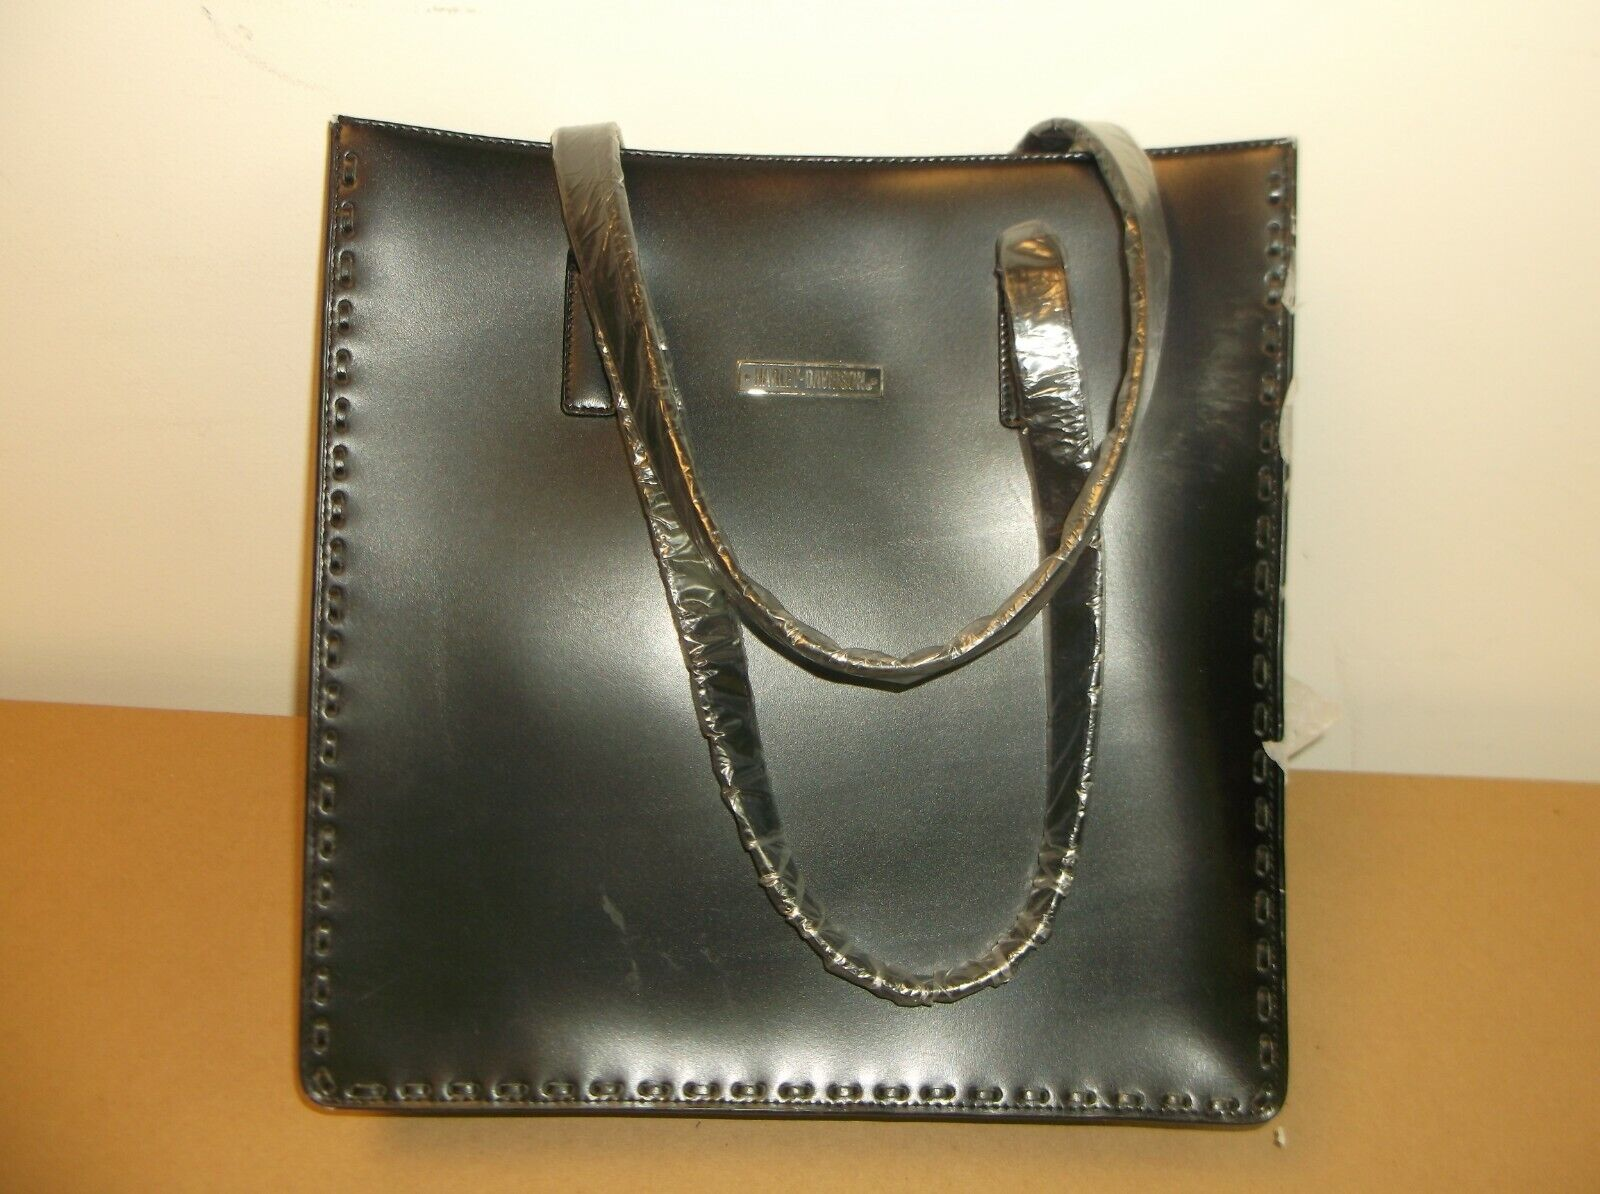 "Harley-Davidson Women's Leather Tote purse 12.5"" x 12.5"" x 3"